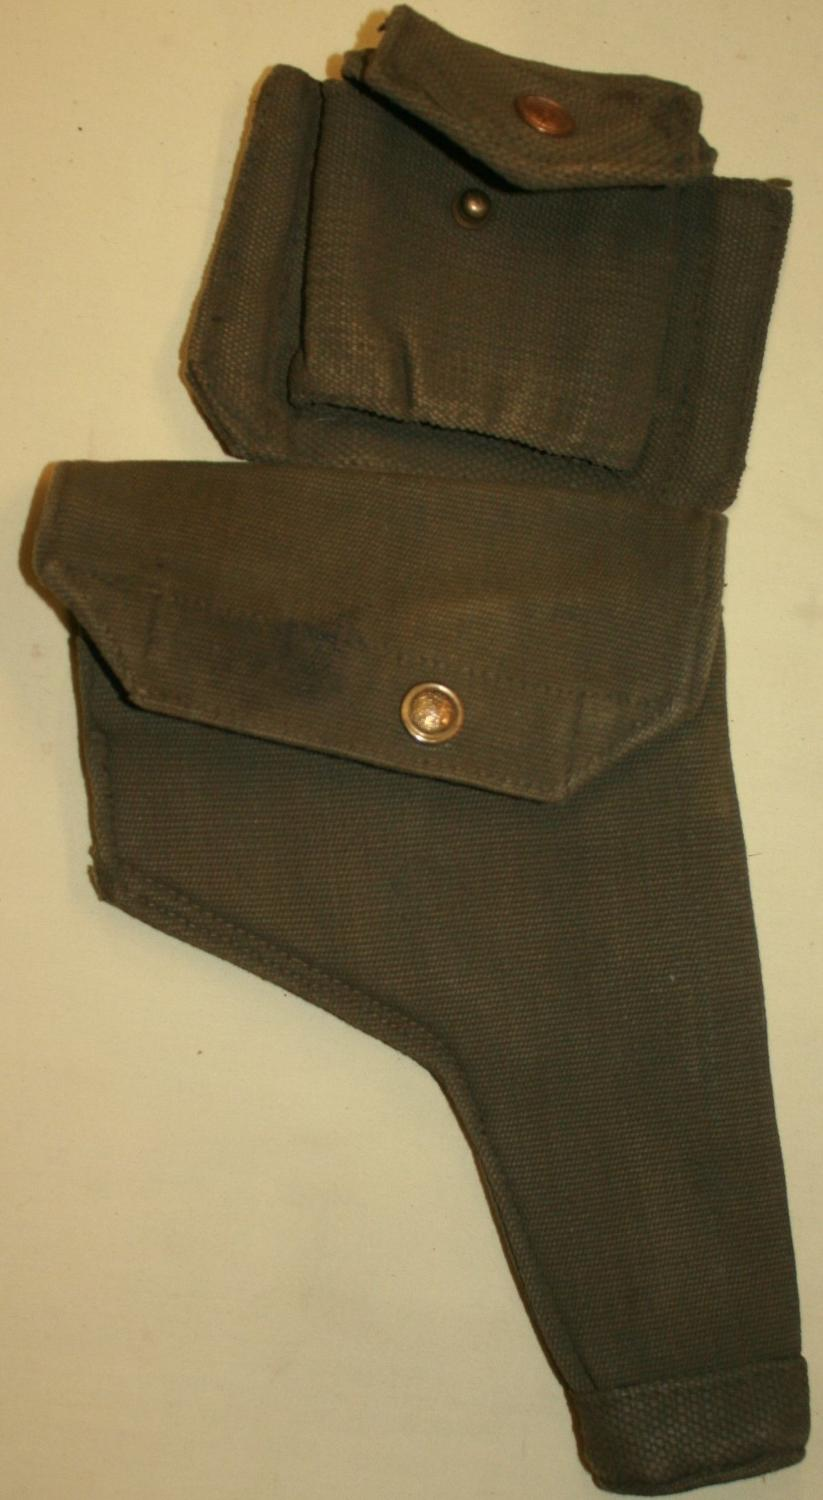 A BLANCOED 37 PATTERN WEBBING HOLSTER AND PISTOL AMMO POUCH